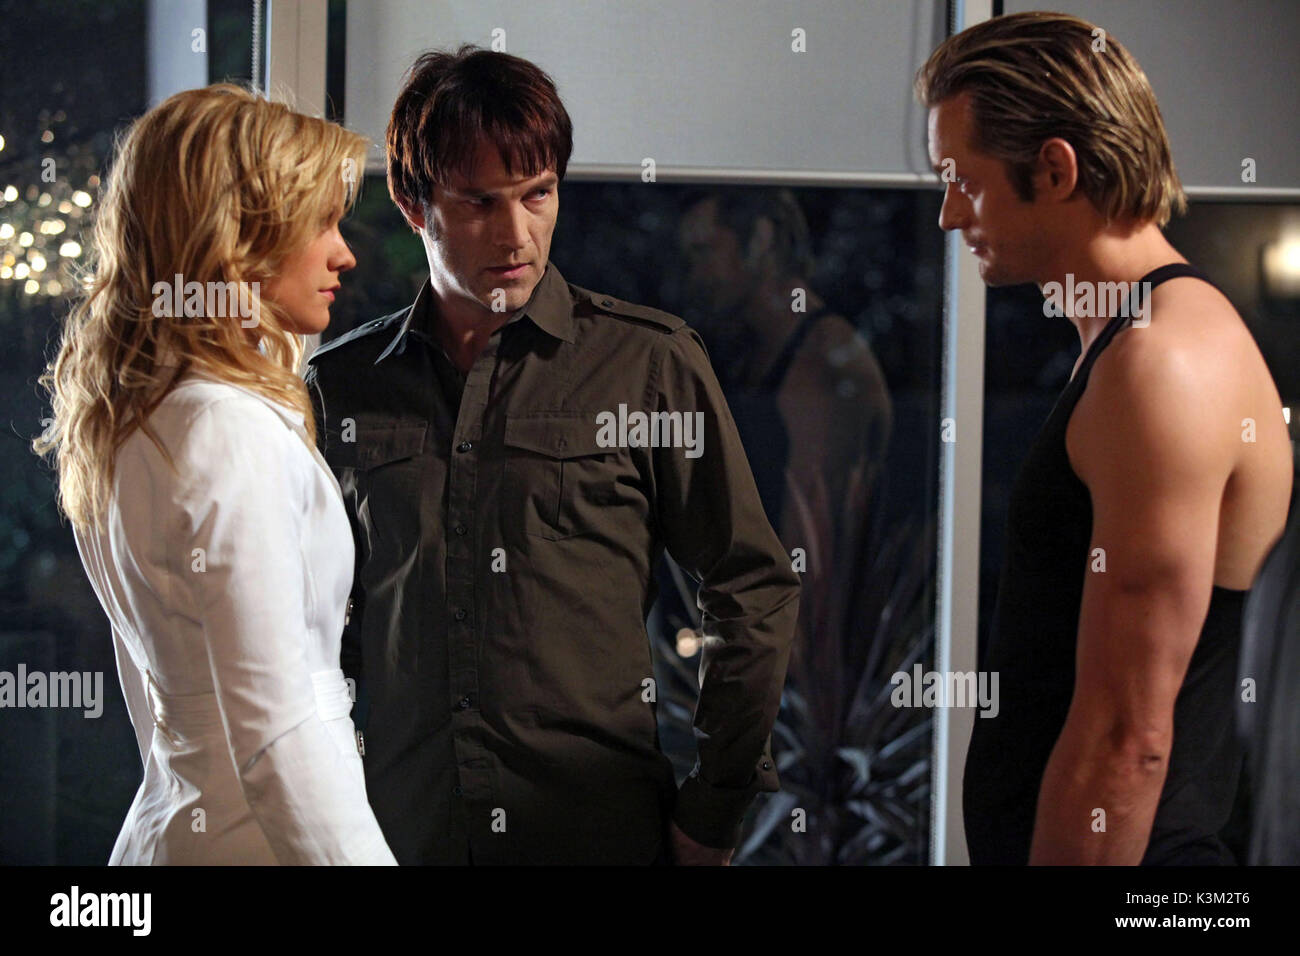 TRUE BLOOD Series,2 / Episode,8 / Timebomb ANNA PAQUIN as Sookie Stackhouse, STEPHEN MOYER as BIll Compton, ALEXANDER - Stock Image